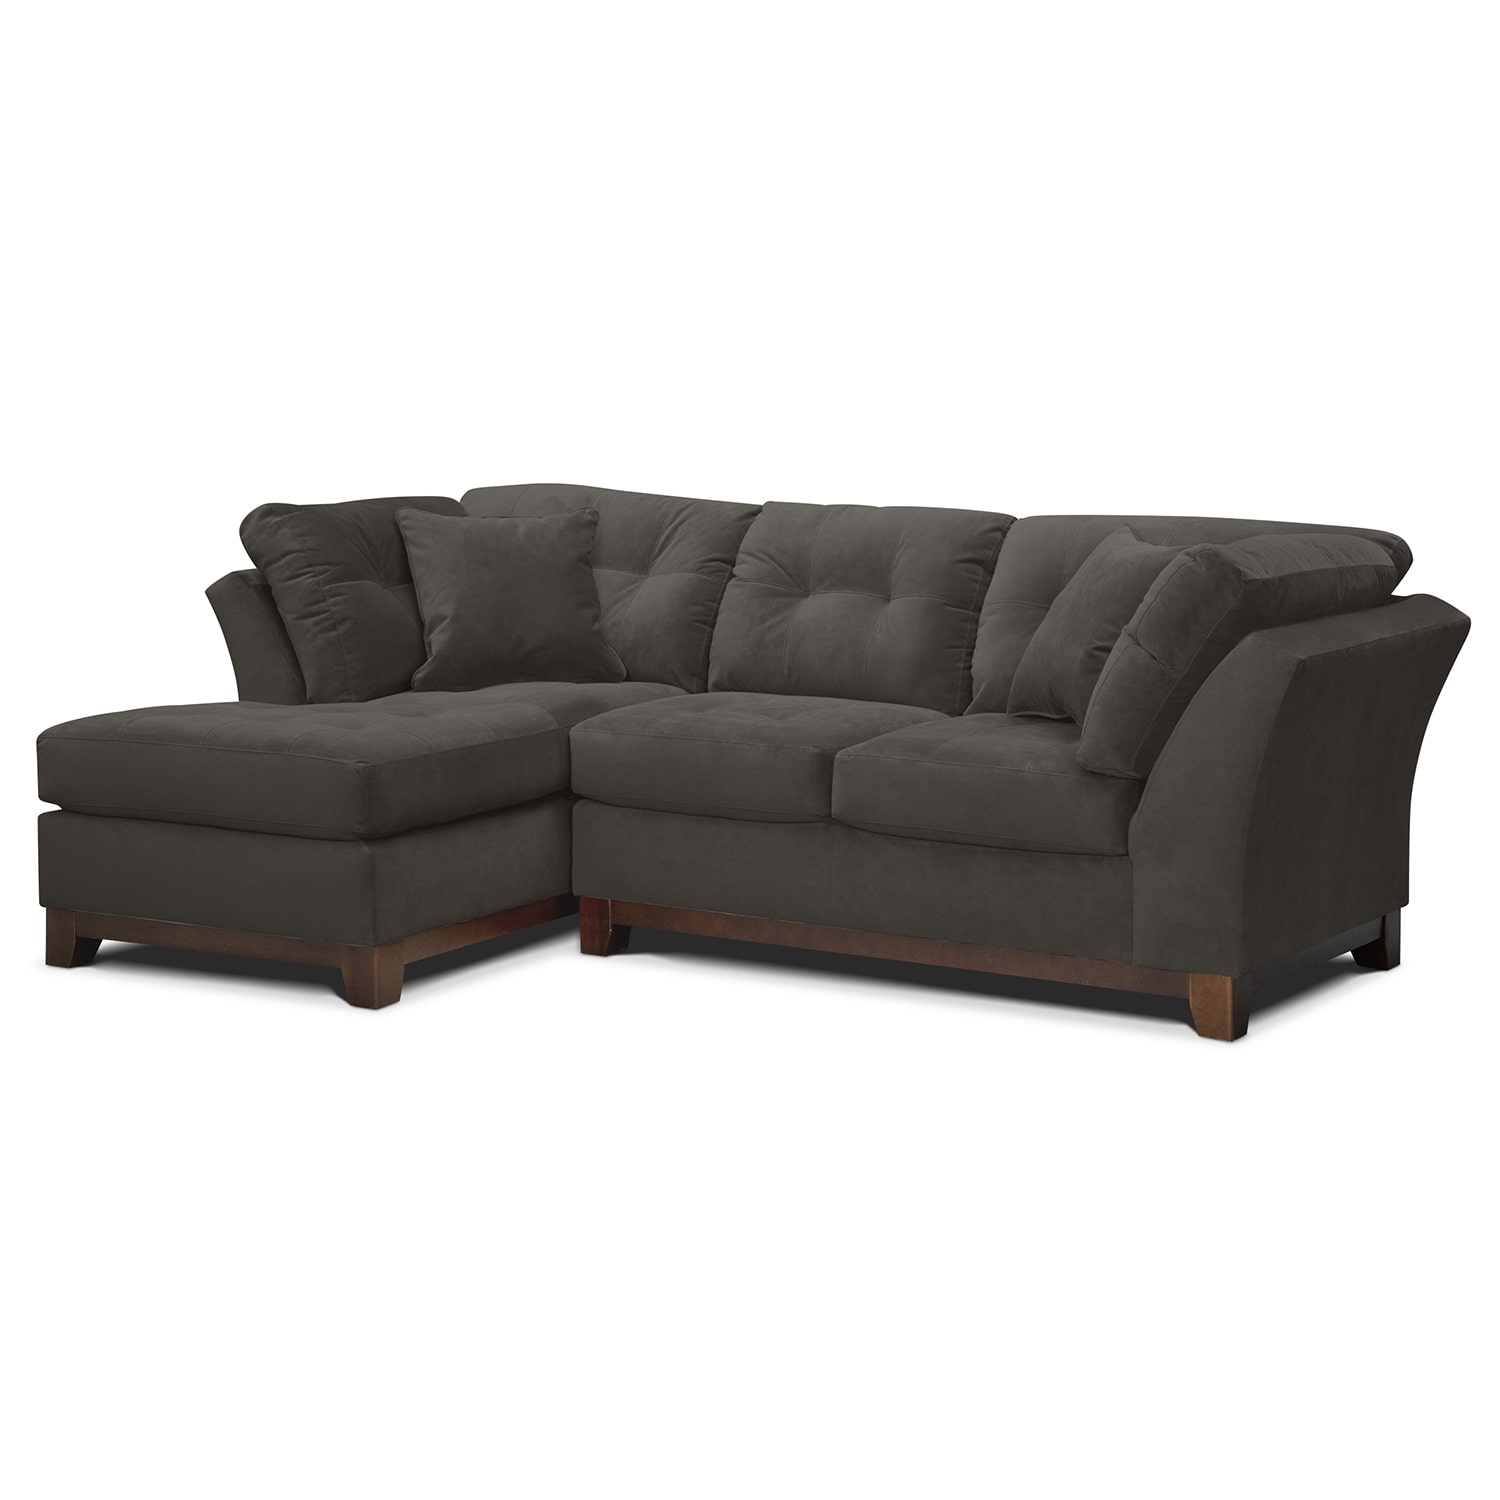 solace gray ii upholstery 2 pc sectional alternate With gray sectional sofa value city